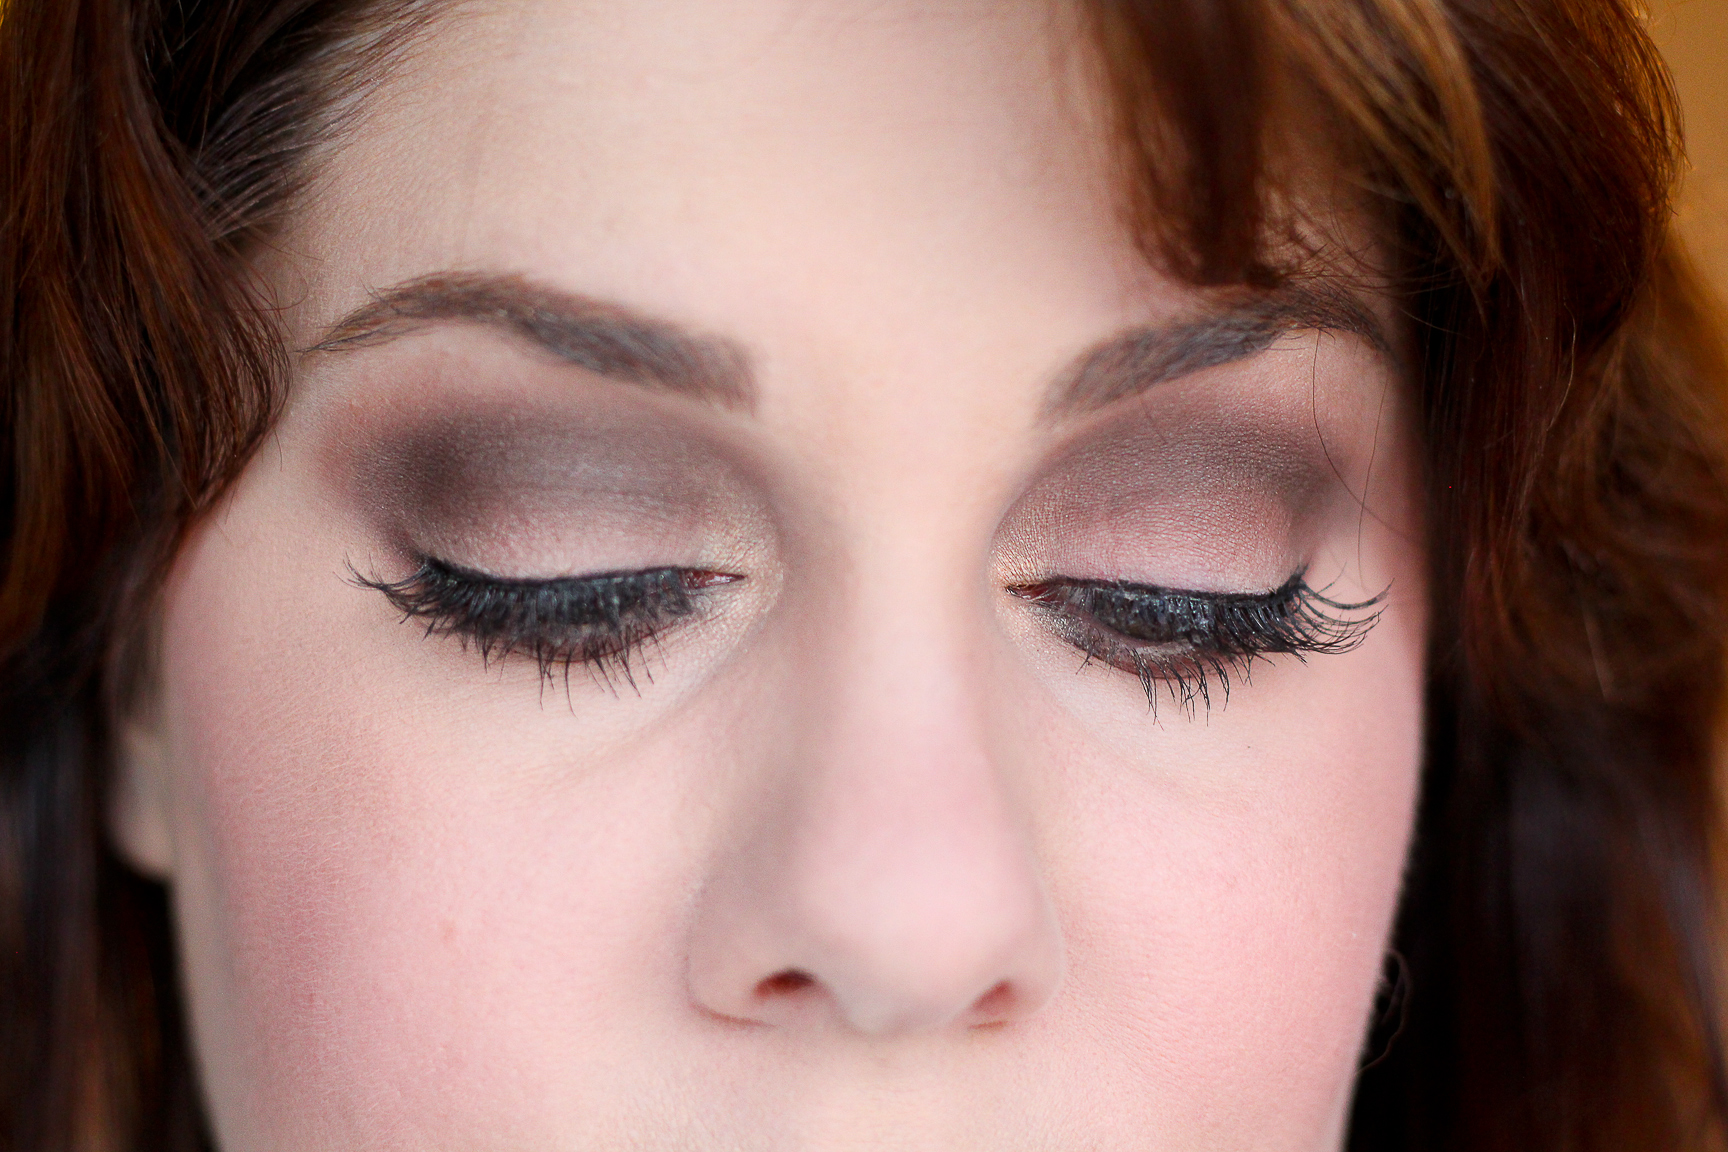 Make Up For Ever Lash Show Natural Impact Lashes in N-303